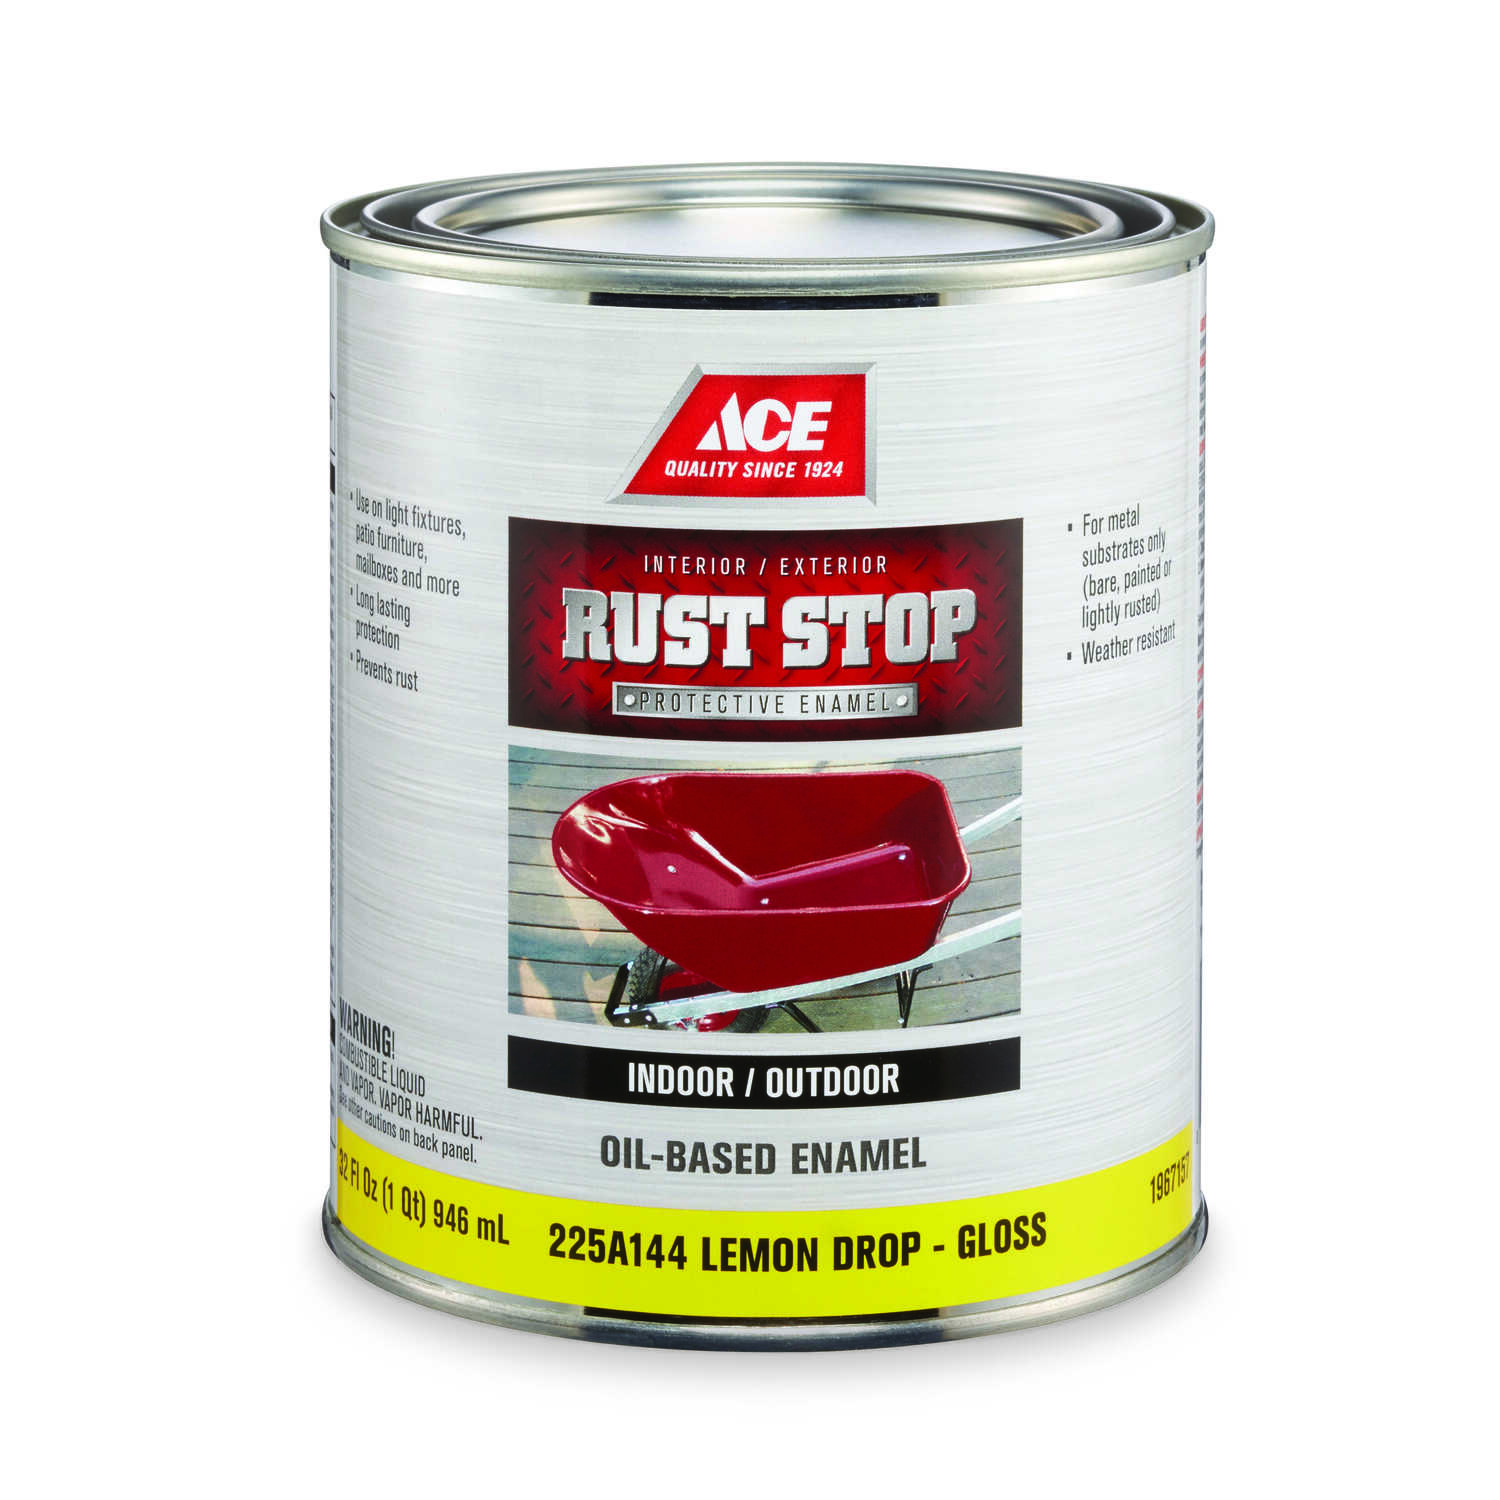 Ace  Rust Stop  Interior/Exterior  Gloss  Indoor and Outdoor  Lemon Drop  1 qt. Rust Prevention Pain